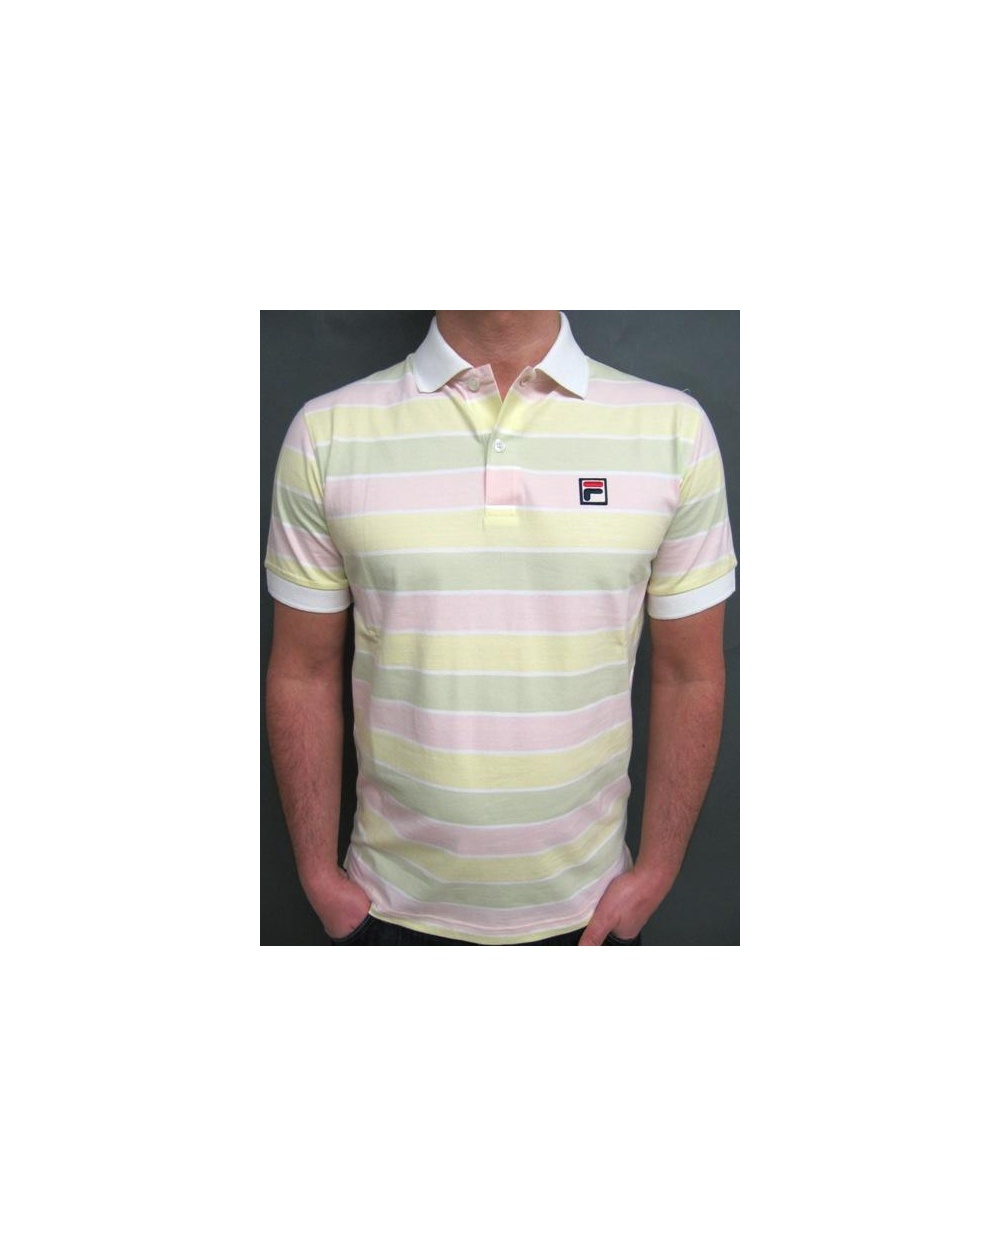 a8952ce2 Fila Vintage Fila Vintage Smuggler Striped Polo White/Yellow/Pink/Green